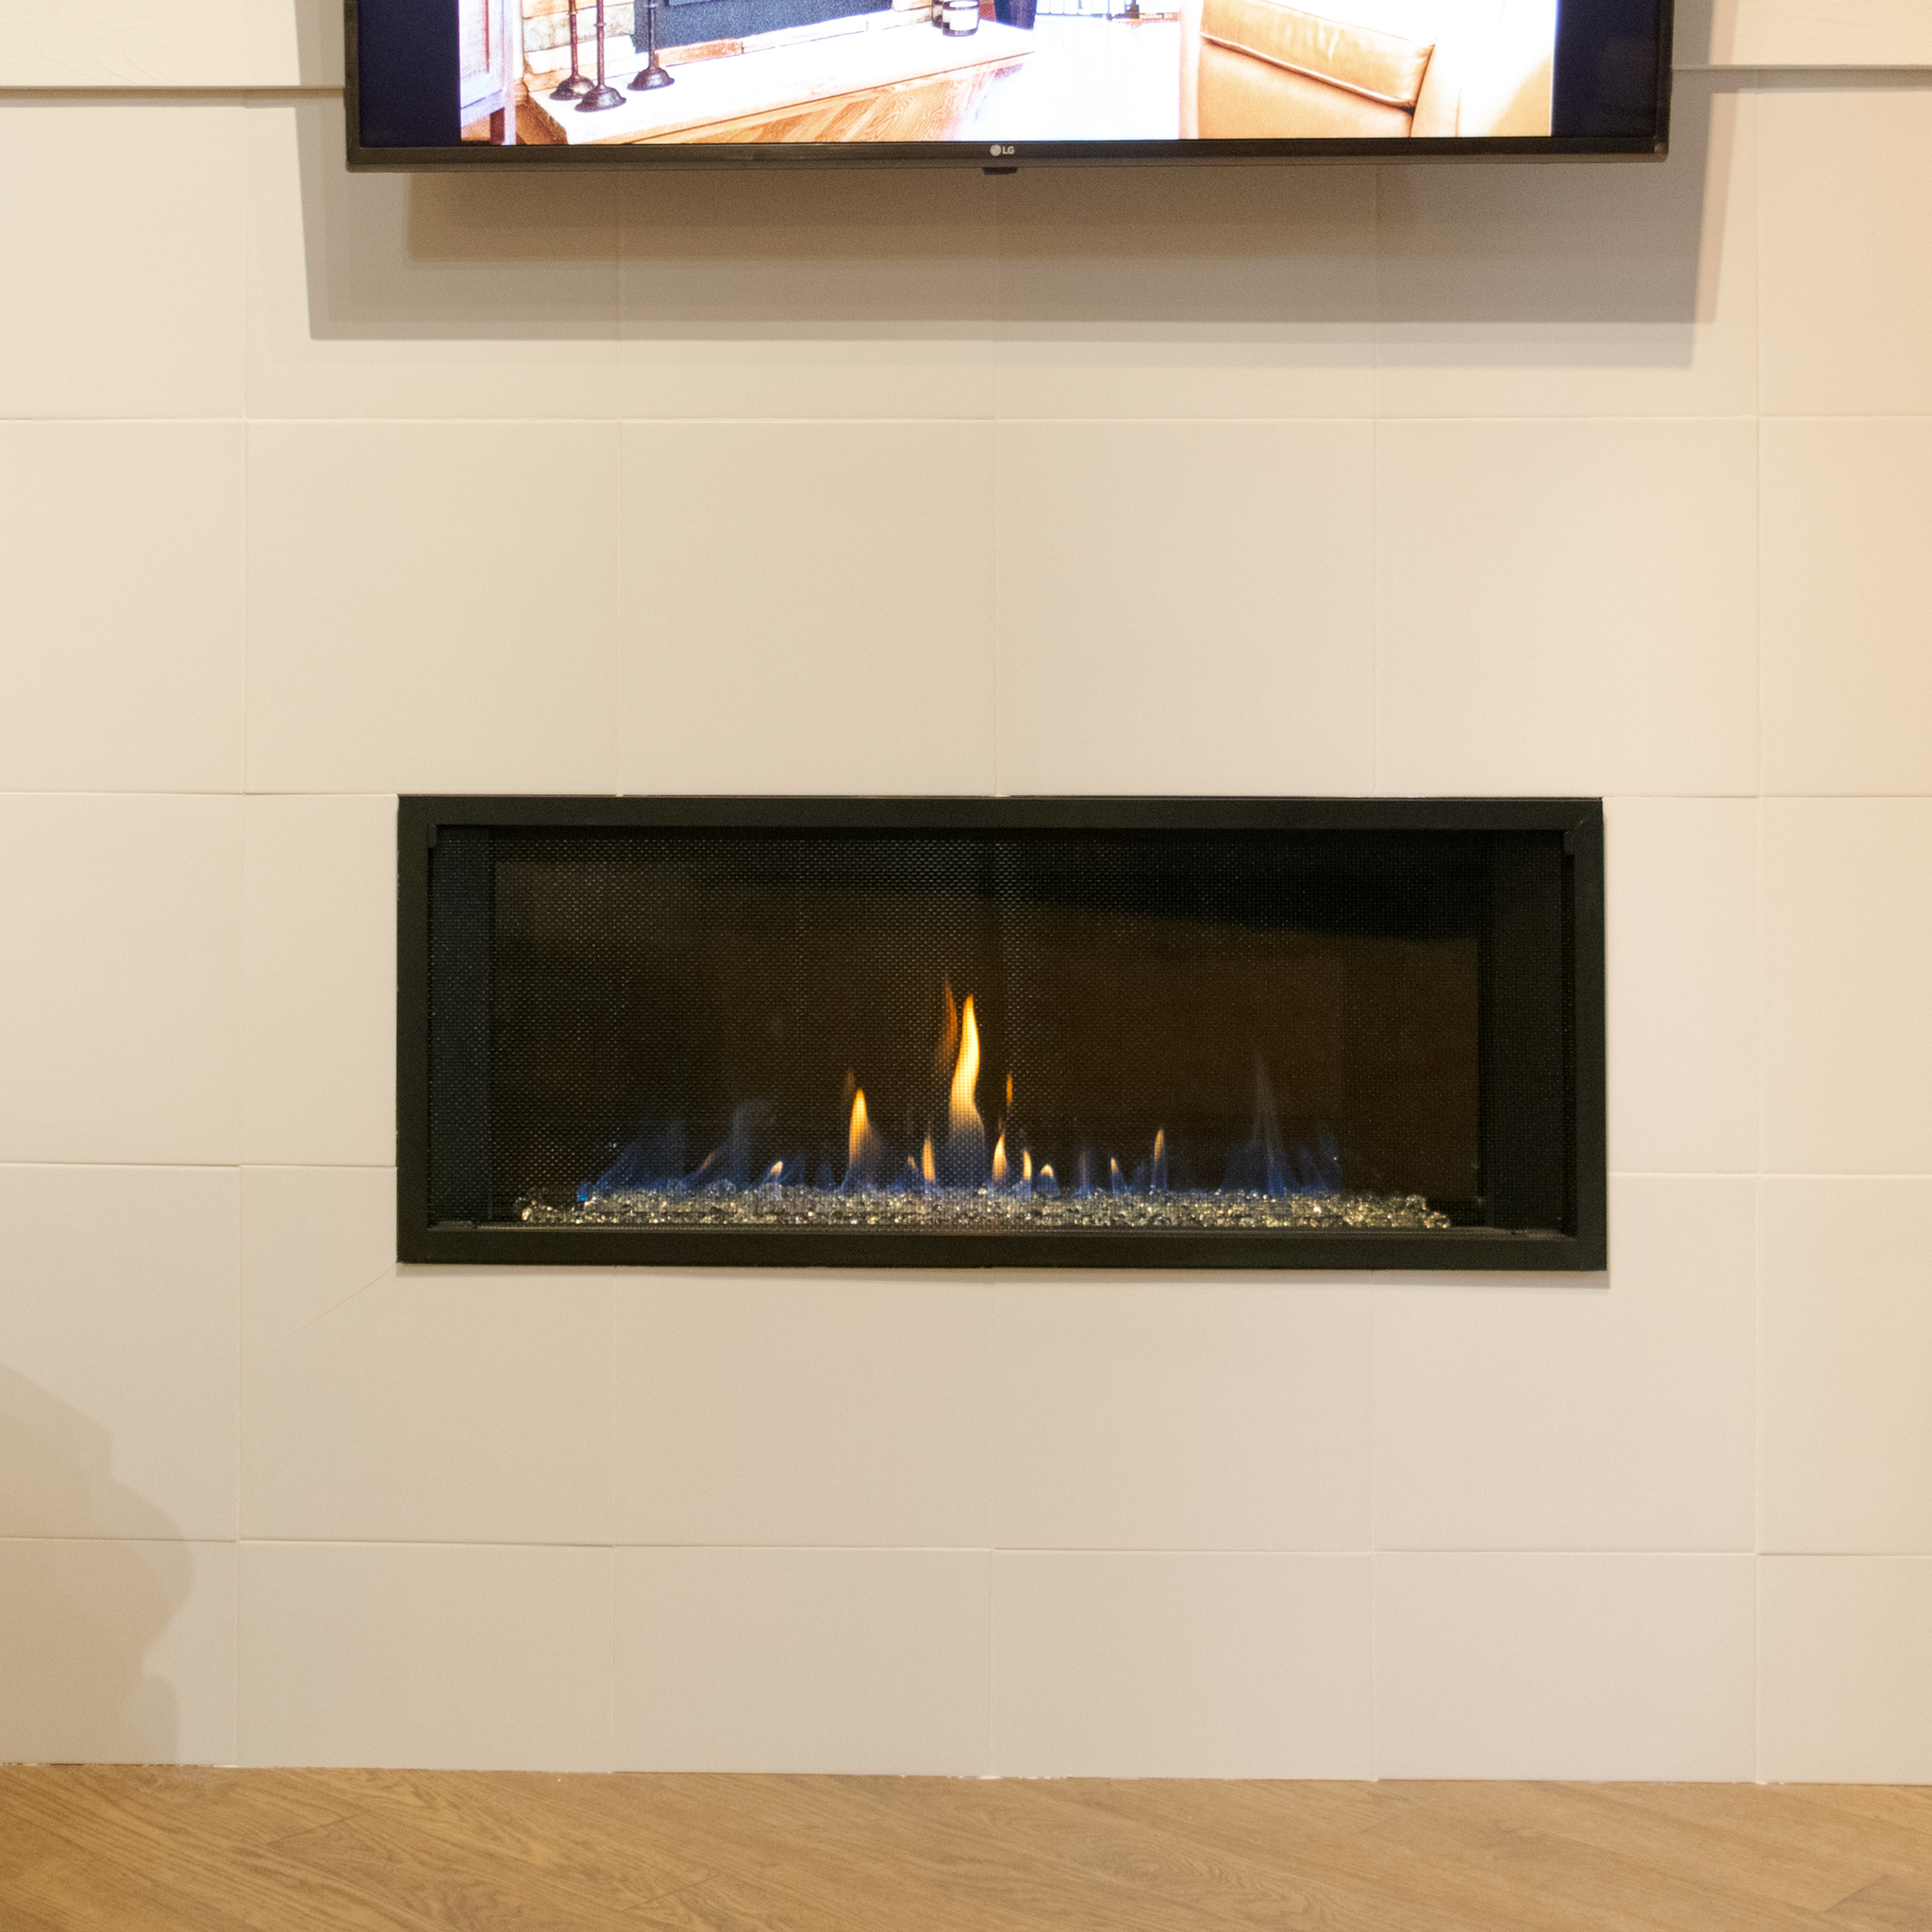 "Valor L1 - ‧ Direct Vent Gas Fireplace - 30,000 BTU‧ Reflective Glass Firebox Panel‧ 1"" Black Finishing Trim‧ Decorative Glass Burner Media‧ Heat Shift System - TV over fireplace!‧ Maxitrol Remote Control‧ Fan – Not included‧ Strong heater‧ Variety of Media options‧ Contemporary Linear Fireplace"